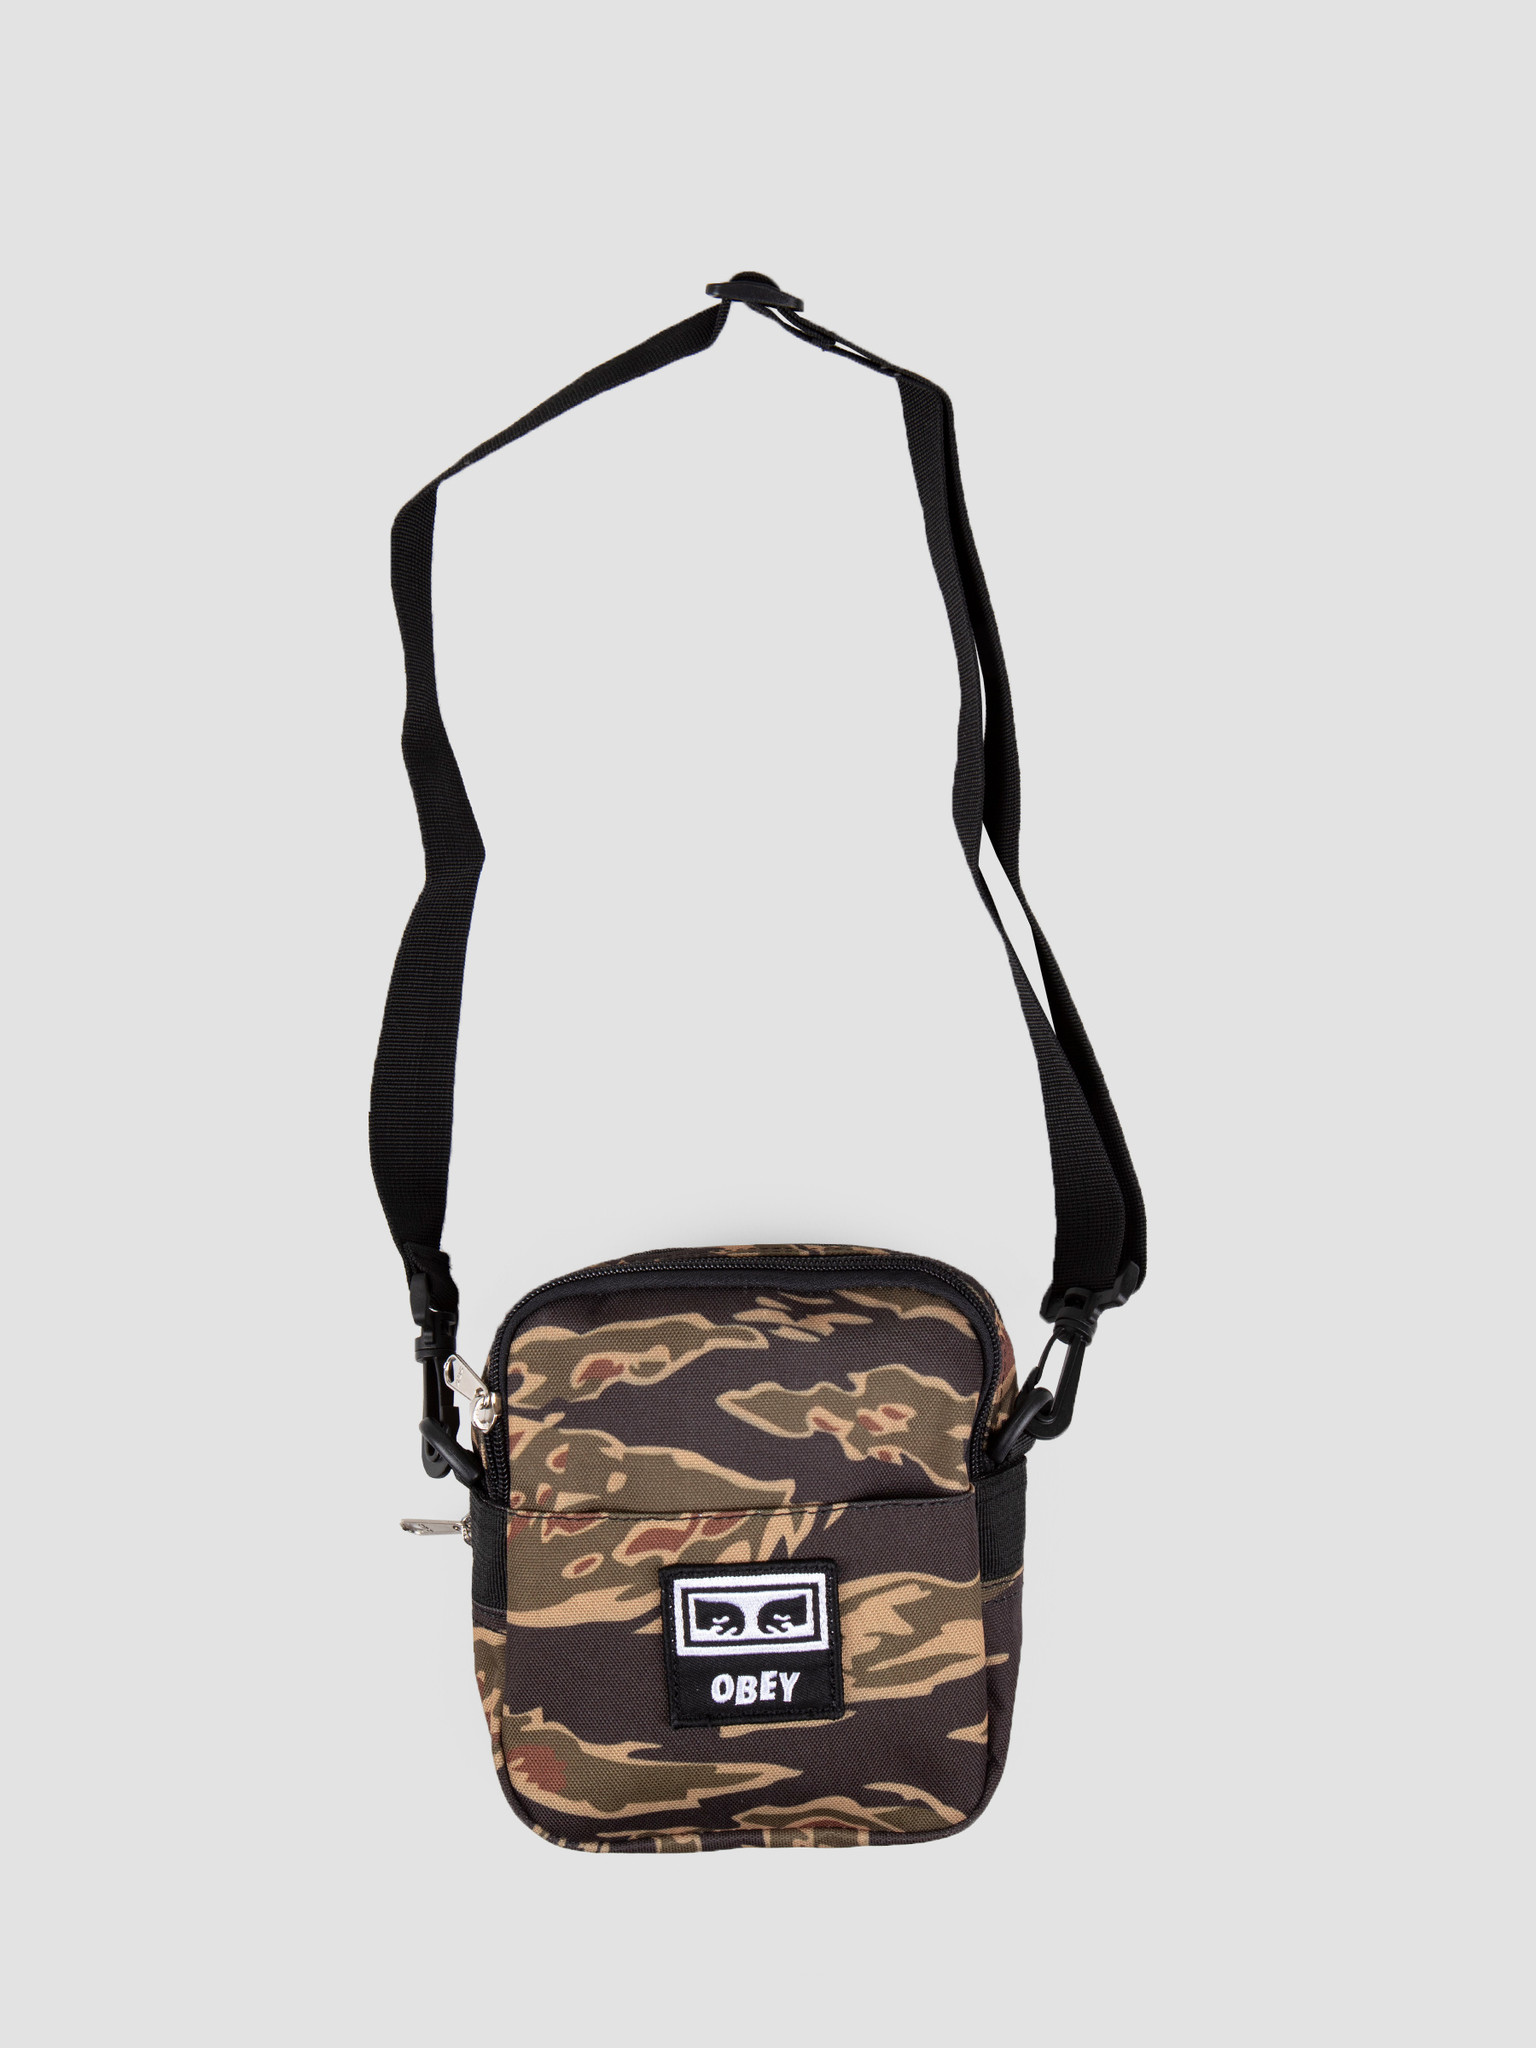 Obey Obey Drop Out Traveler Bag TIG 100010094